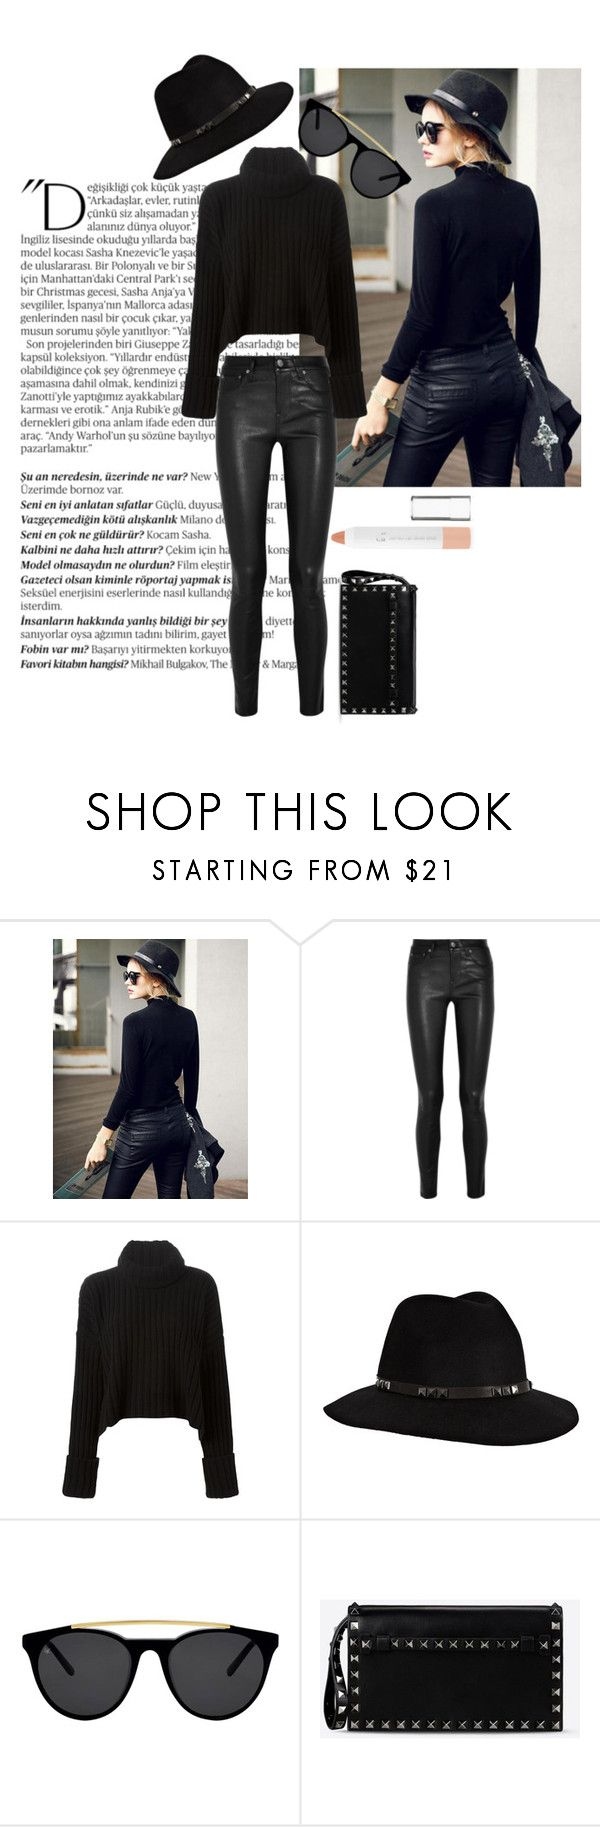 """""""Shein"""" by eowynthecat ❤ liked on Polyvore featuring Balmain, Helmut Lang, Faith Connexion, Anine Bing, Smoke x Mirrors, Valentino and e.l.f."""